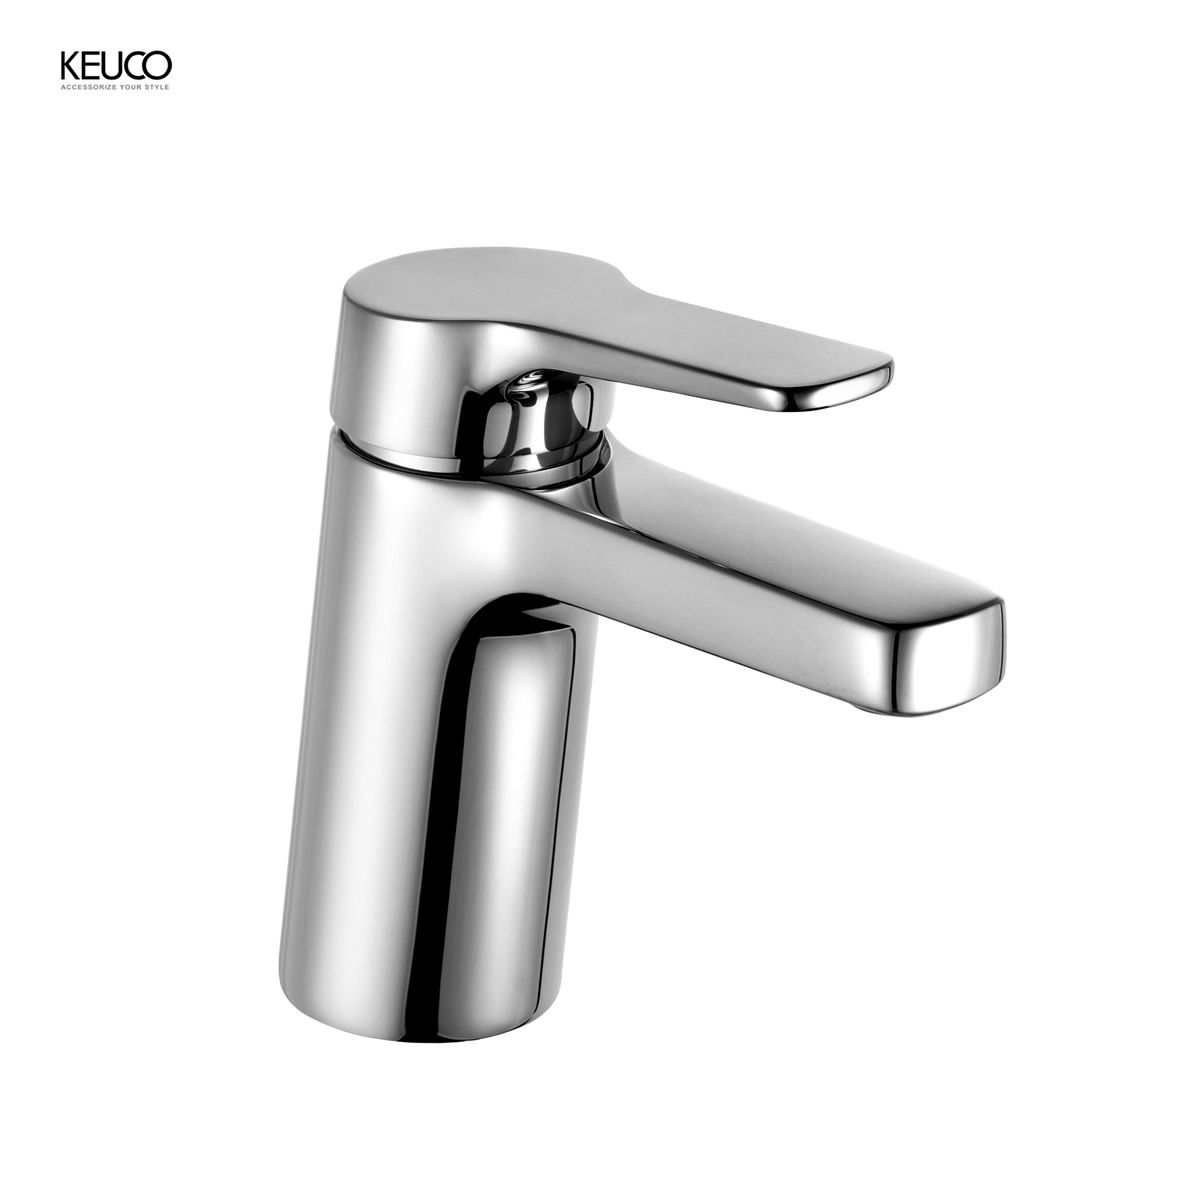 Keuco Moll Single Lever Basin Mixer 100